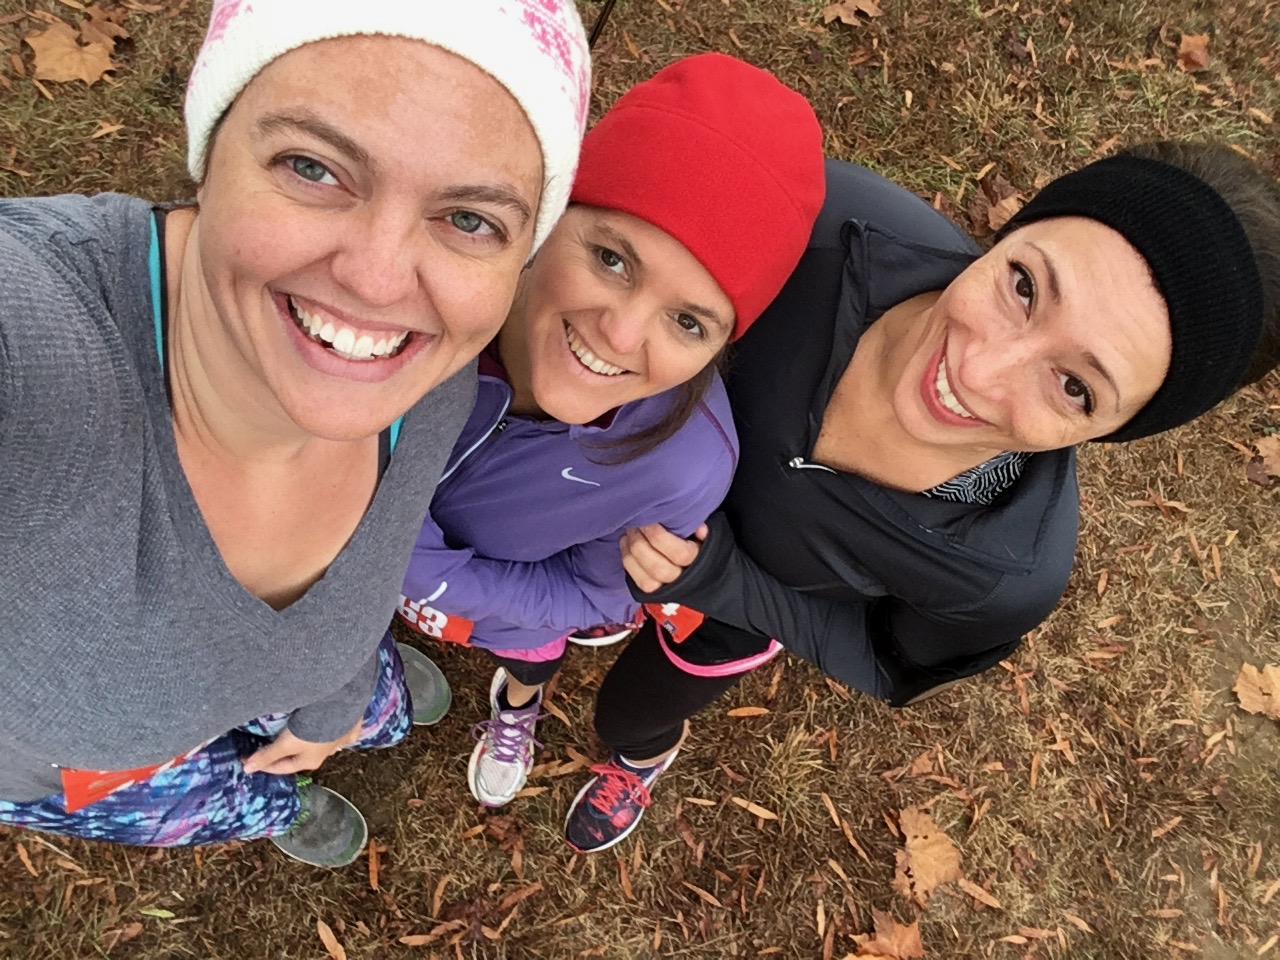 Brittany with a couple of her closest friends and training partners, Kristie Fox and Linda Davis, before running in the Secret City Half Marathon.